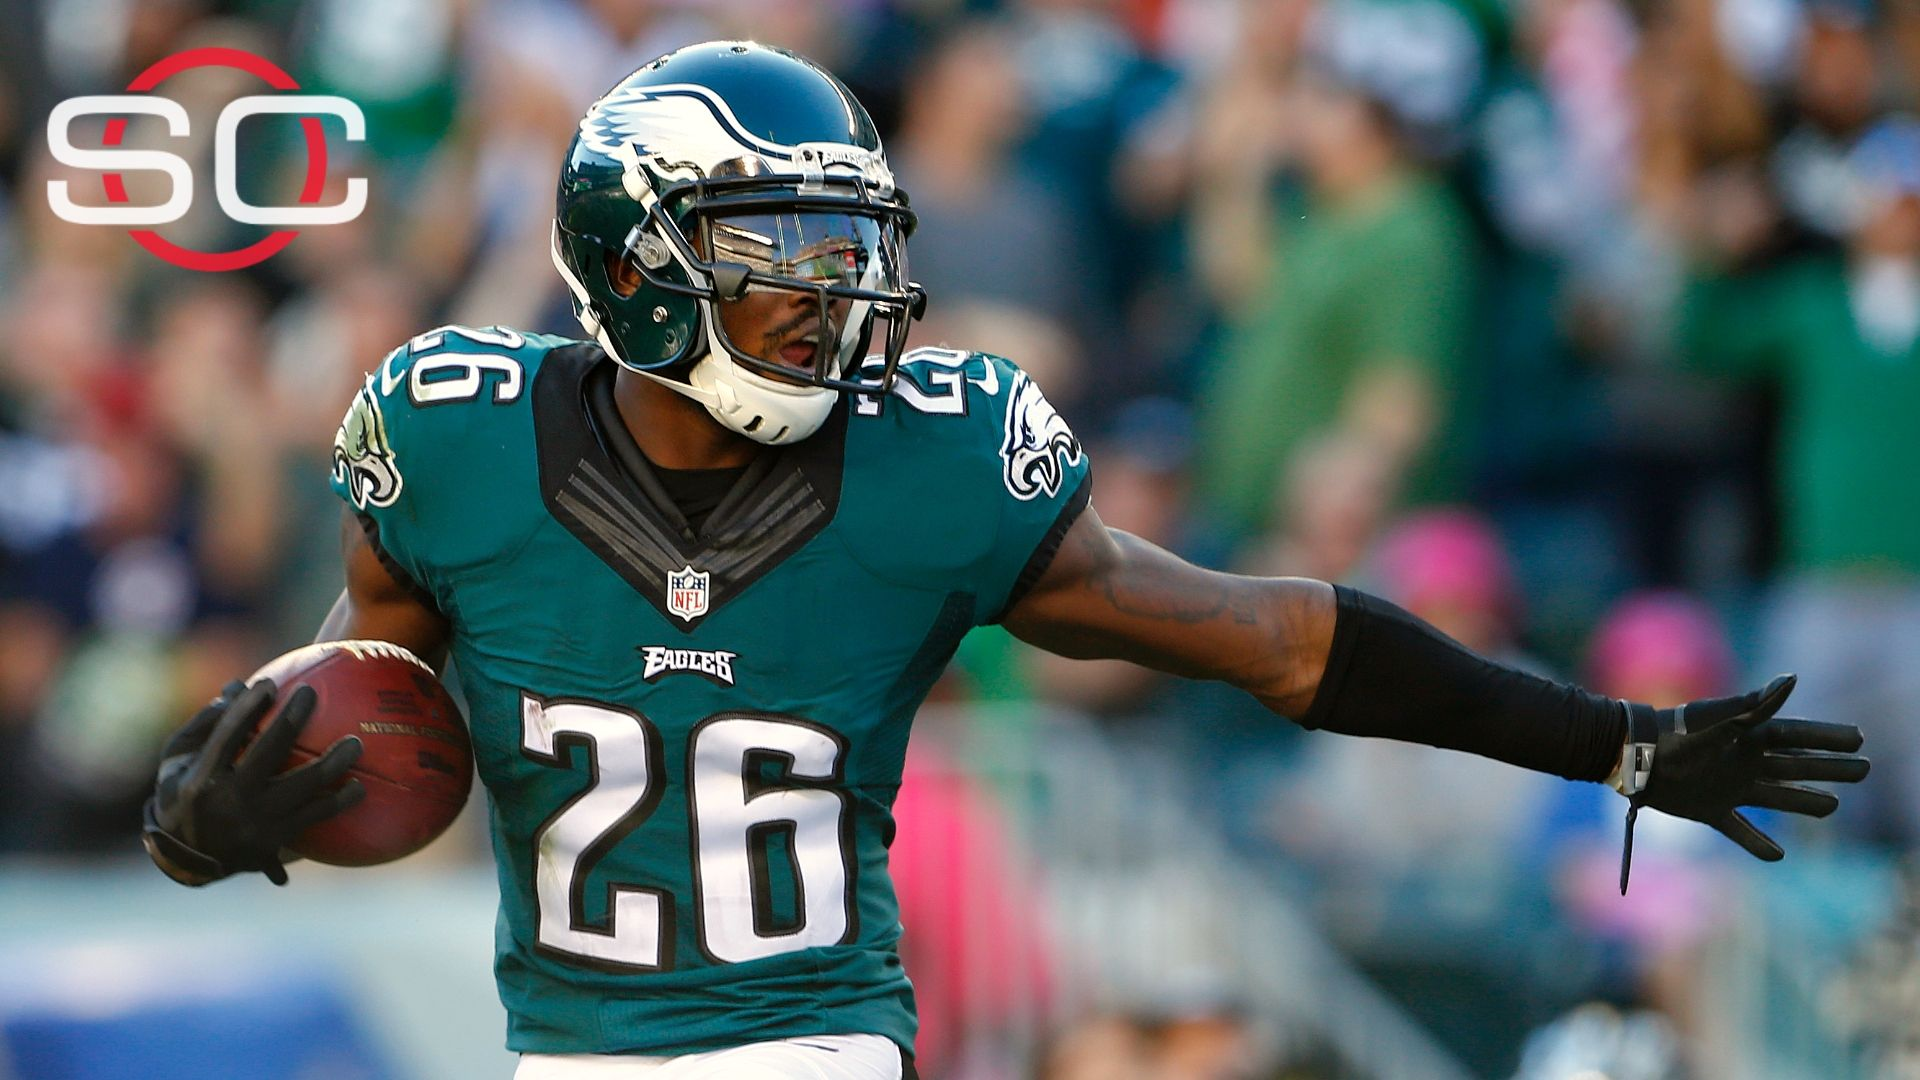 Thurmond 'unhappy' with position change, opts to retire